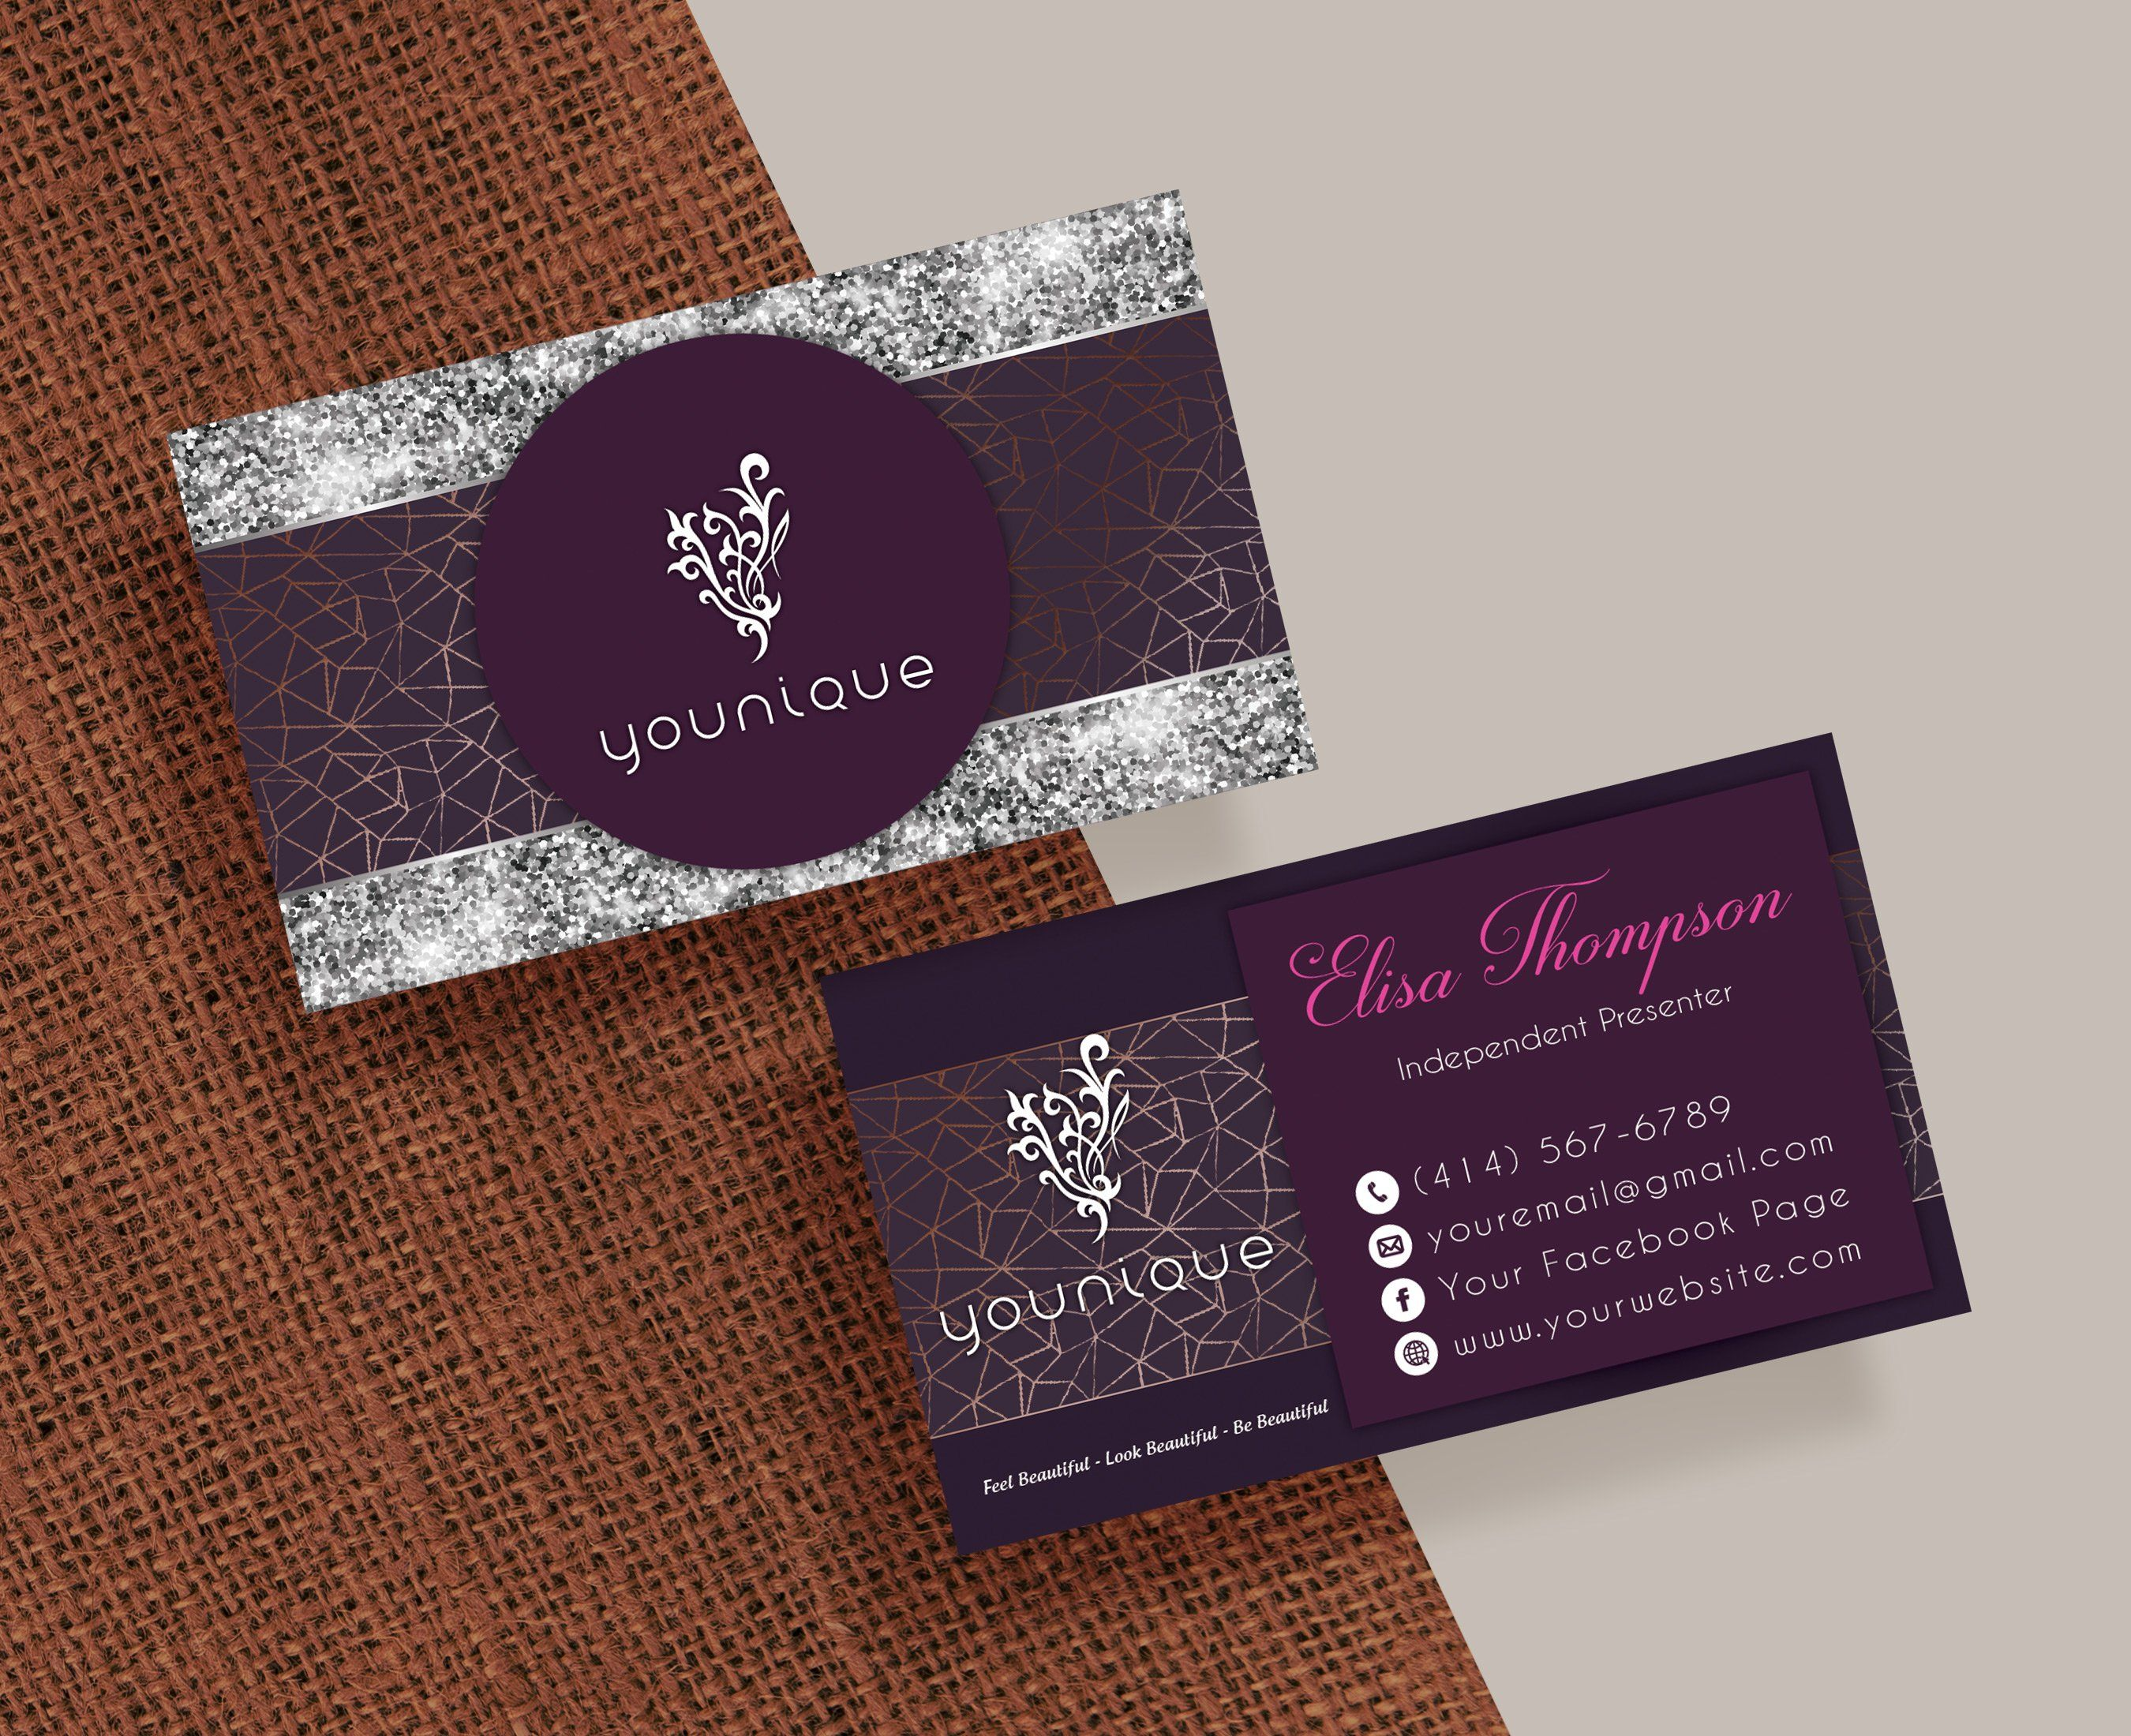 Younique Business Card Personalized Younique Business Card Yq10 Toboart Younique Business Cards Younique Business Younique